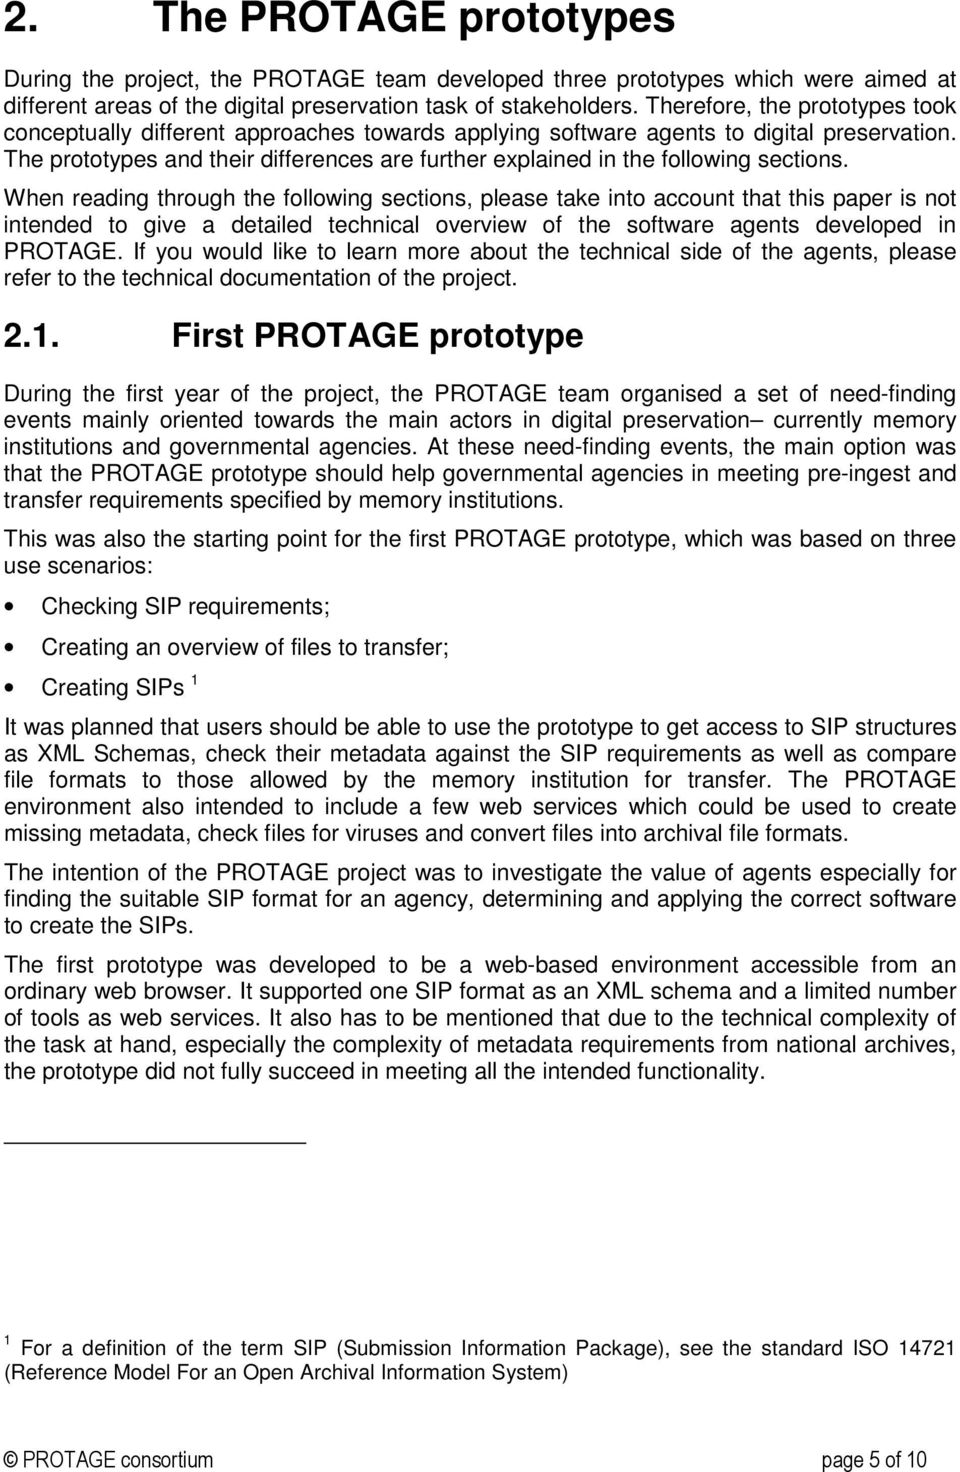 The prototypes and their differences are further explained in the following sections.